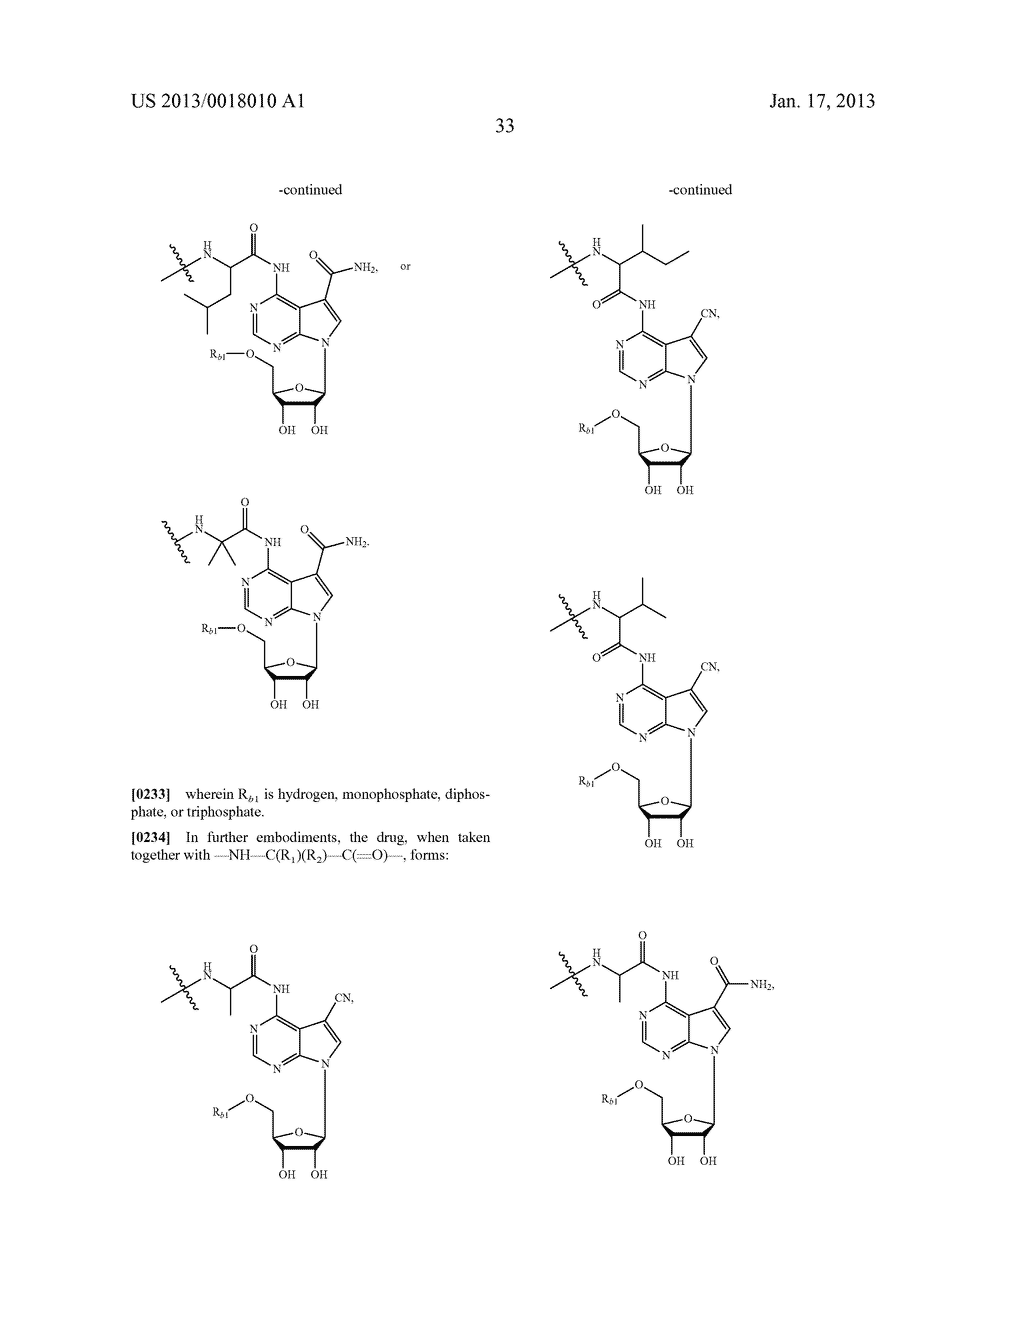 POLYMERIC CONJUGATES OF ADENINE NUCLEOSIDE ANALOGS - diagram, schematic, and image 52